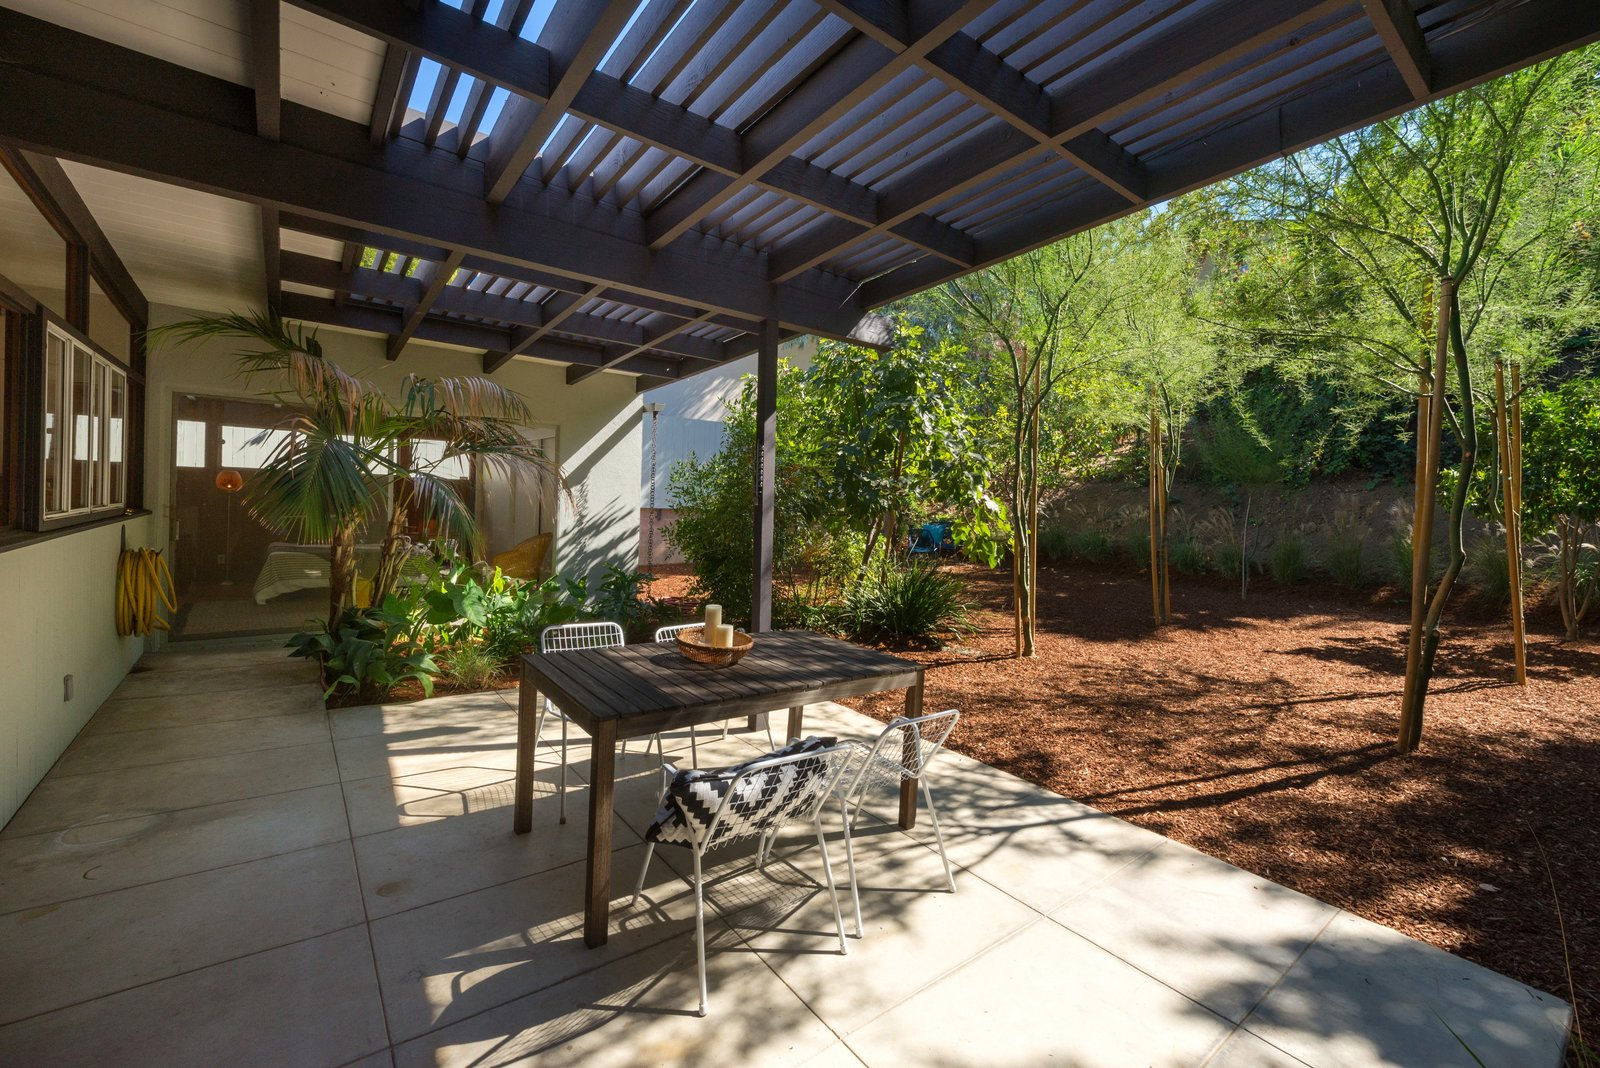 Outdoor, Side Yard, Large Patio, Porch, Deck, and Trees The patio features space for al fresco dining.  Photo 15 of 17 in Snag This Hollywood Hills Midcentury Home For $1M